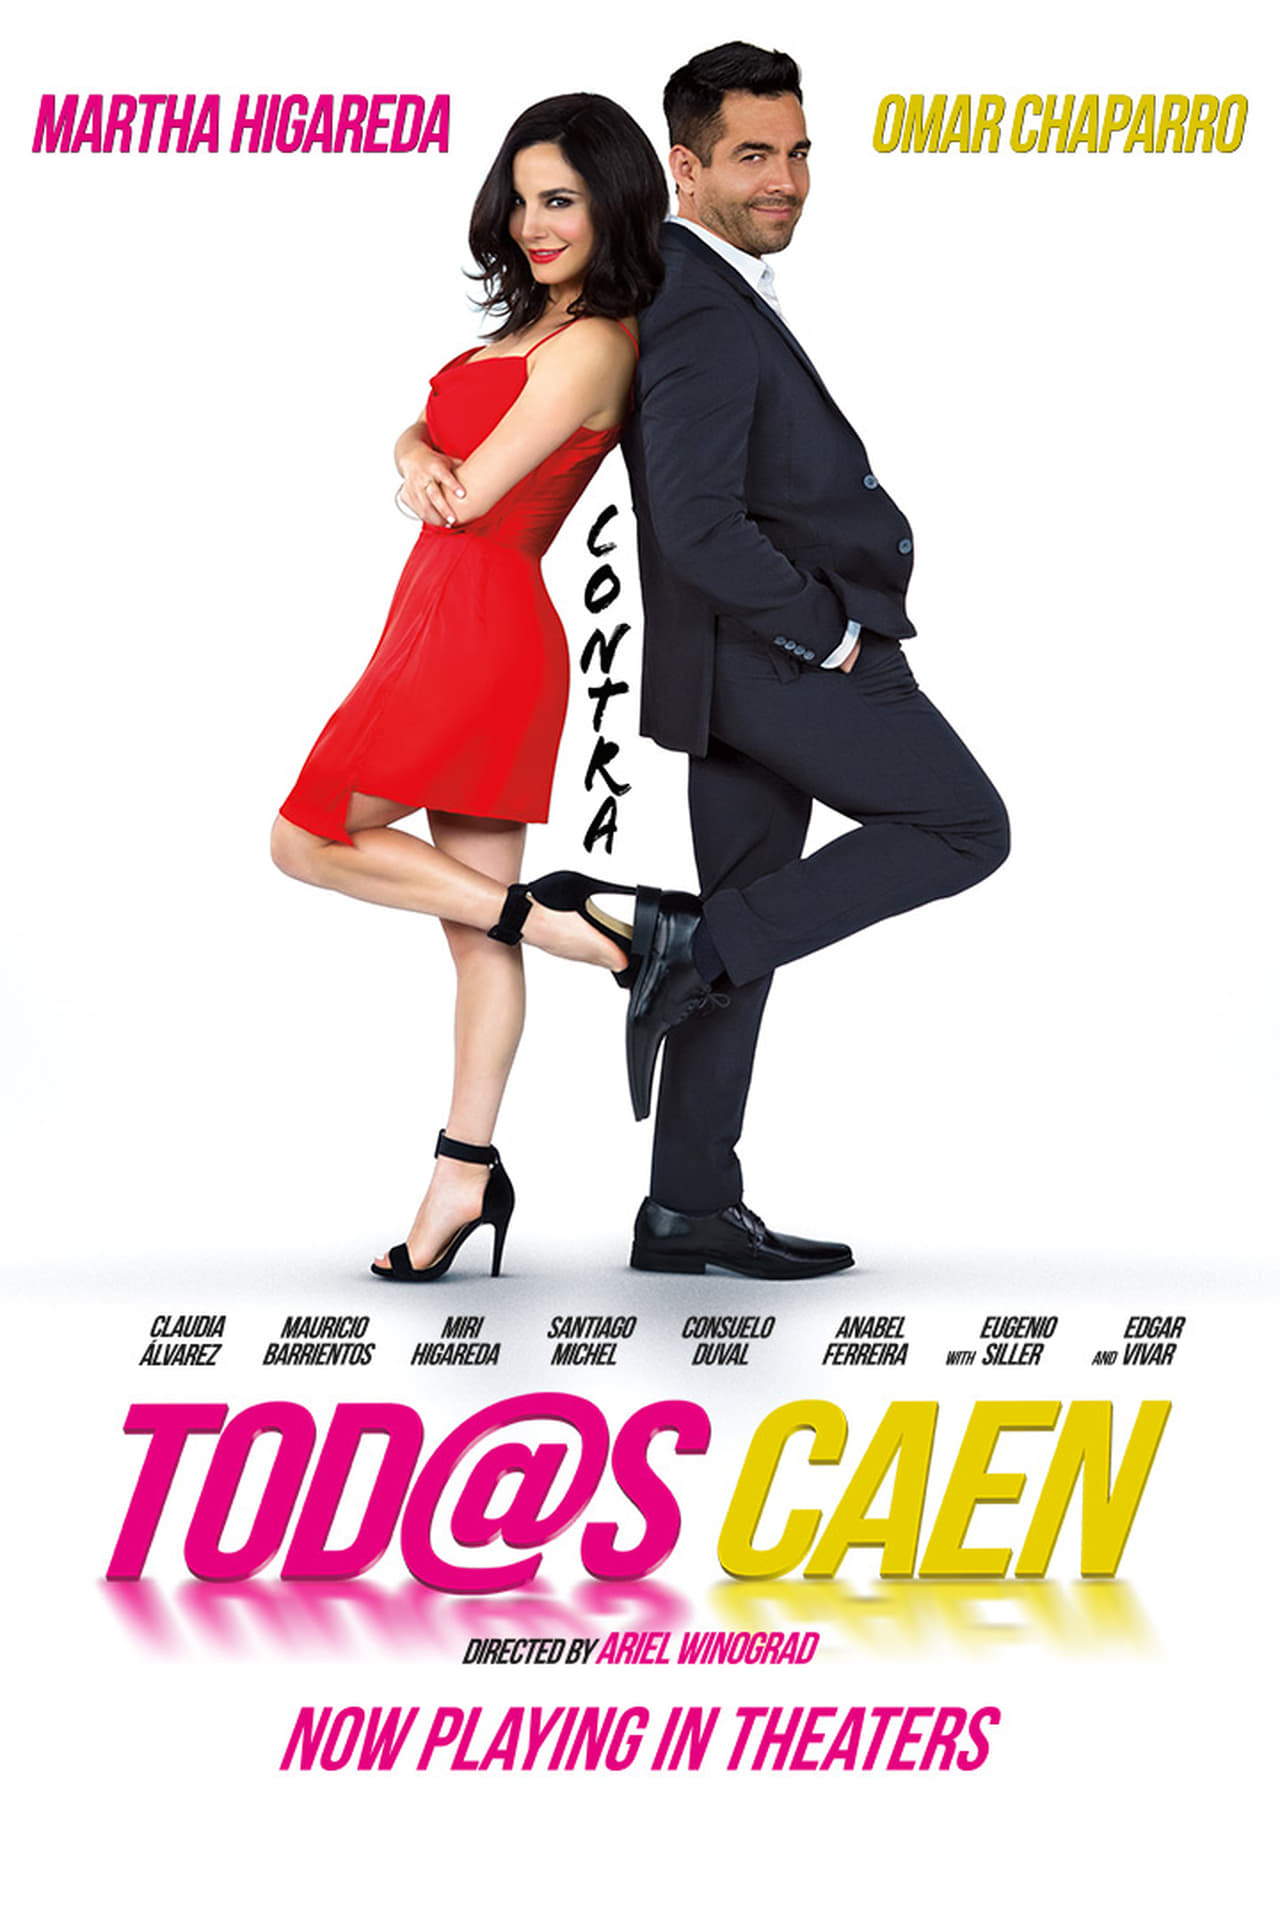 Tod@s Caen poster